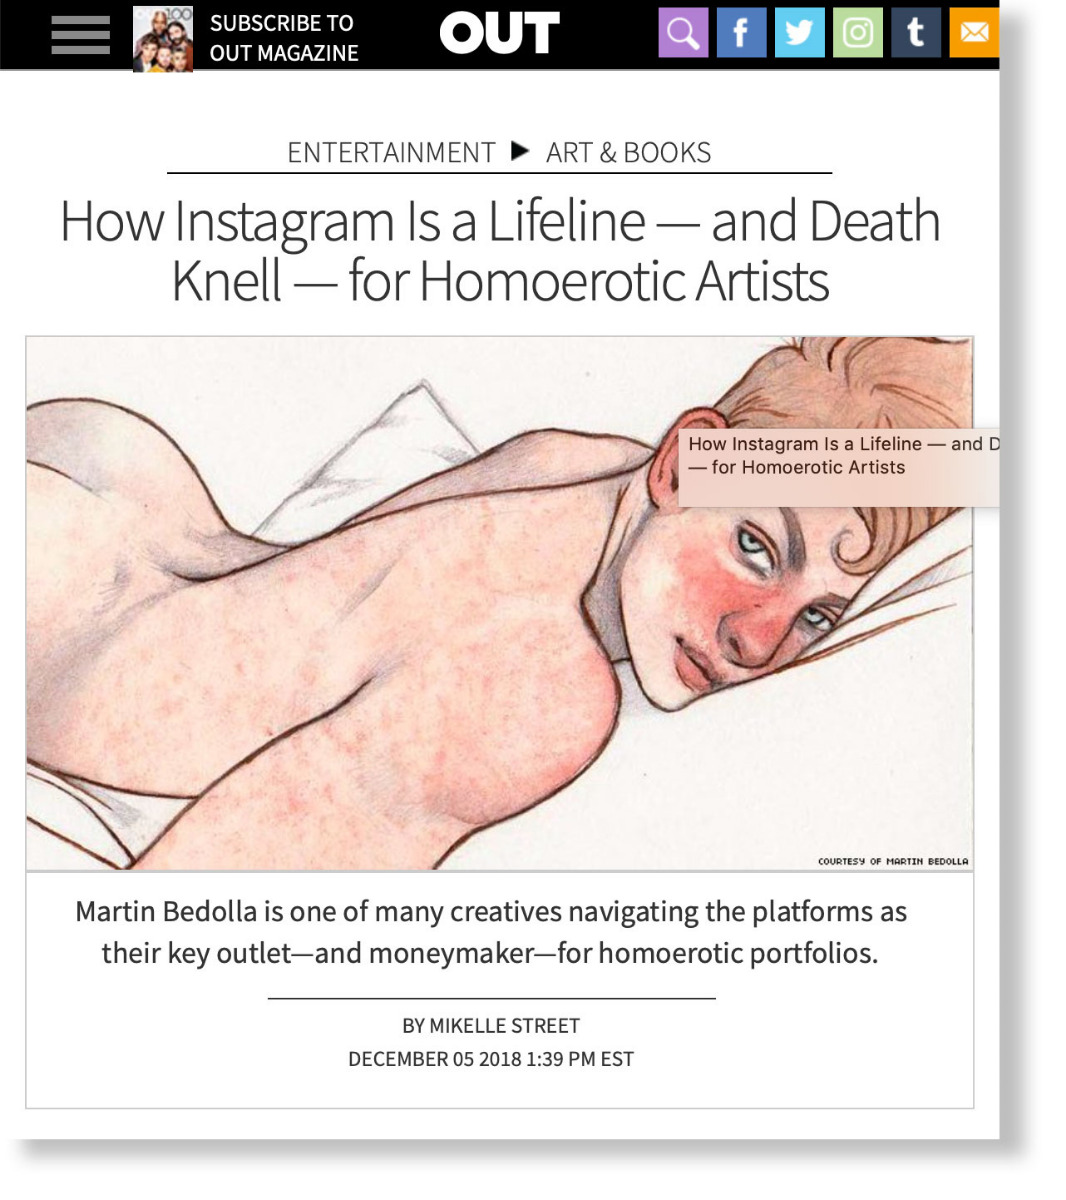 How Instagram Is a Lifeline — and Death Knell — for Homoerotic Artist